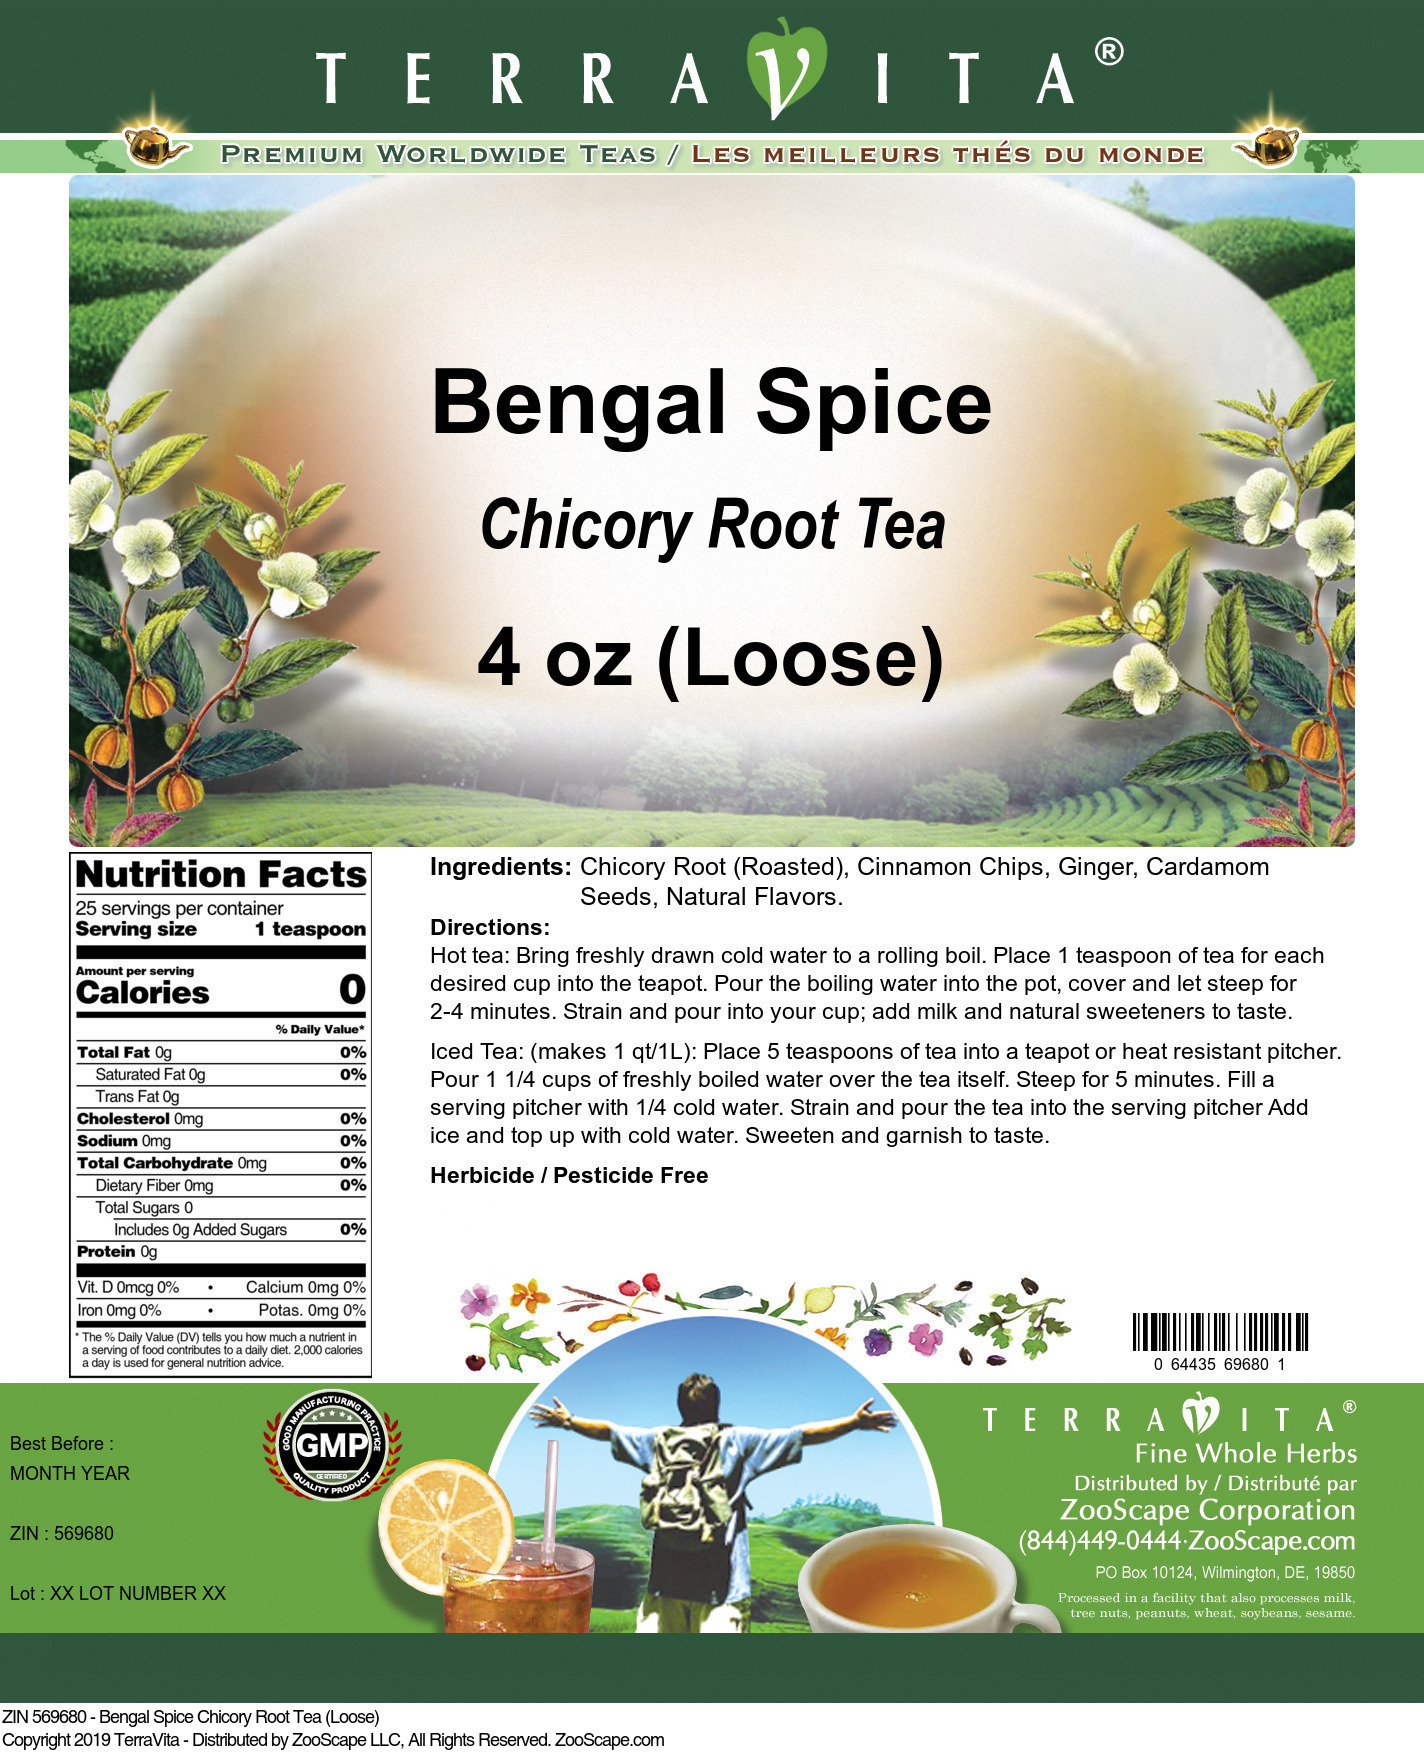 Bengal Spice Chicory Root